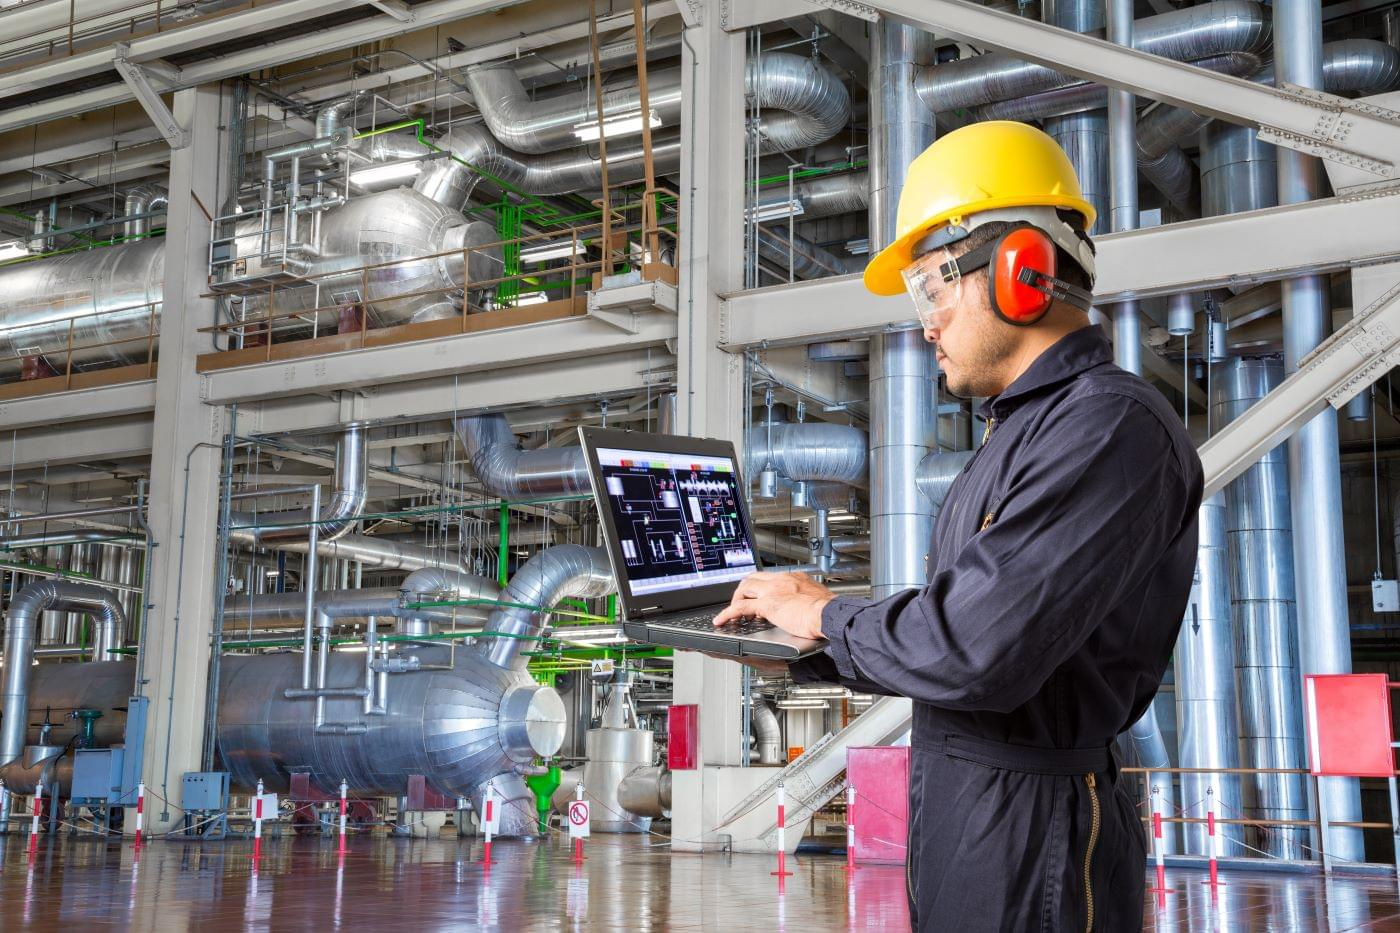 How CMMS Software Works for Maintenance Organizations